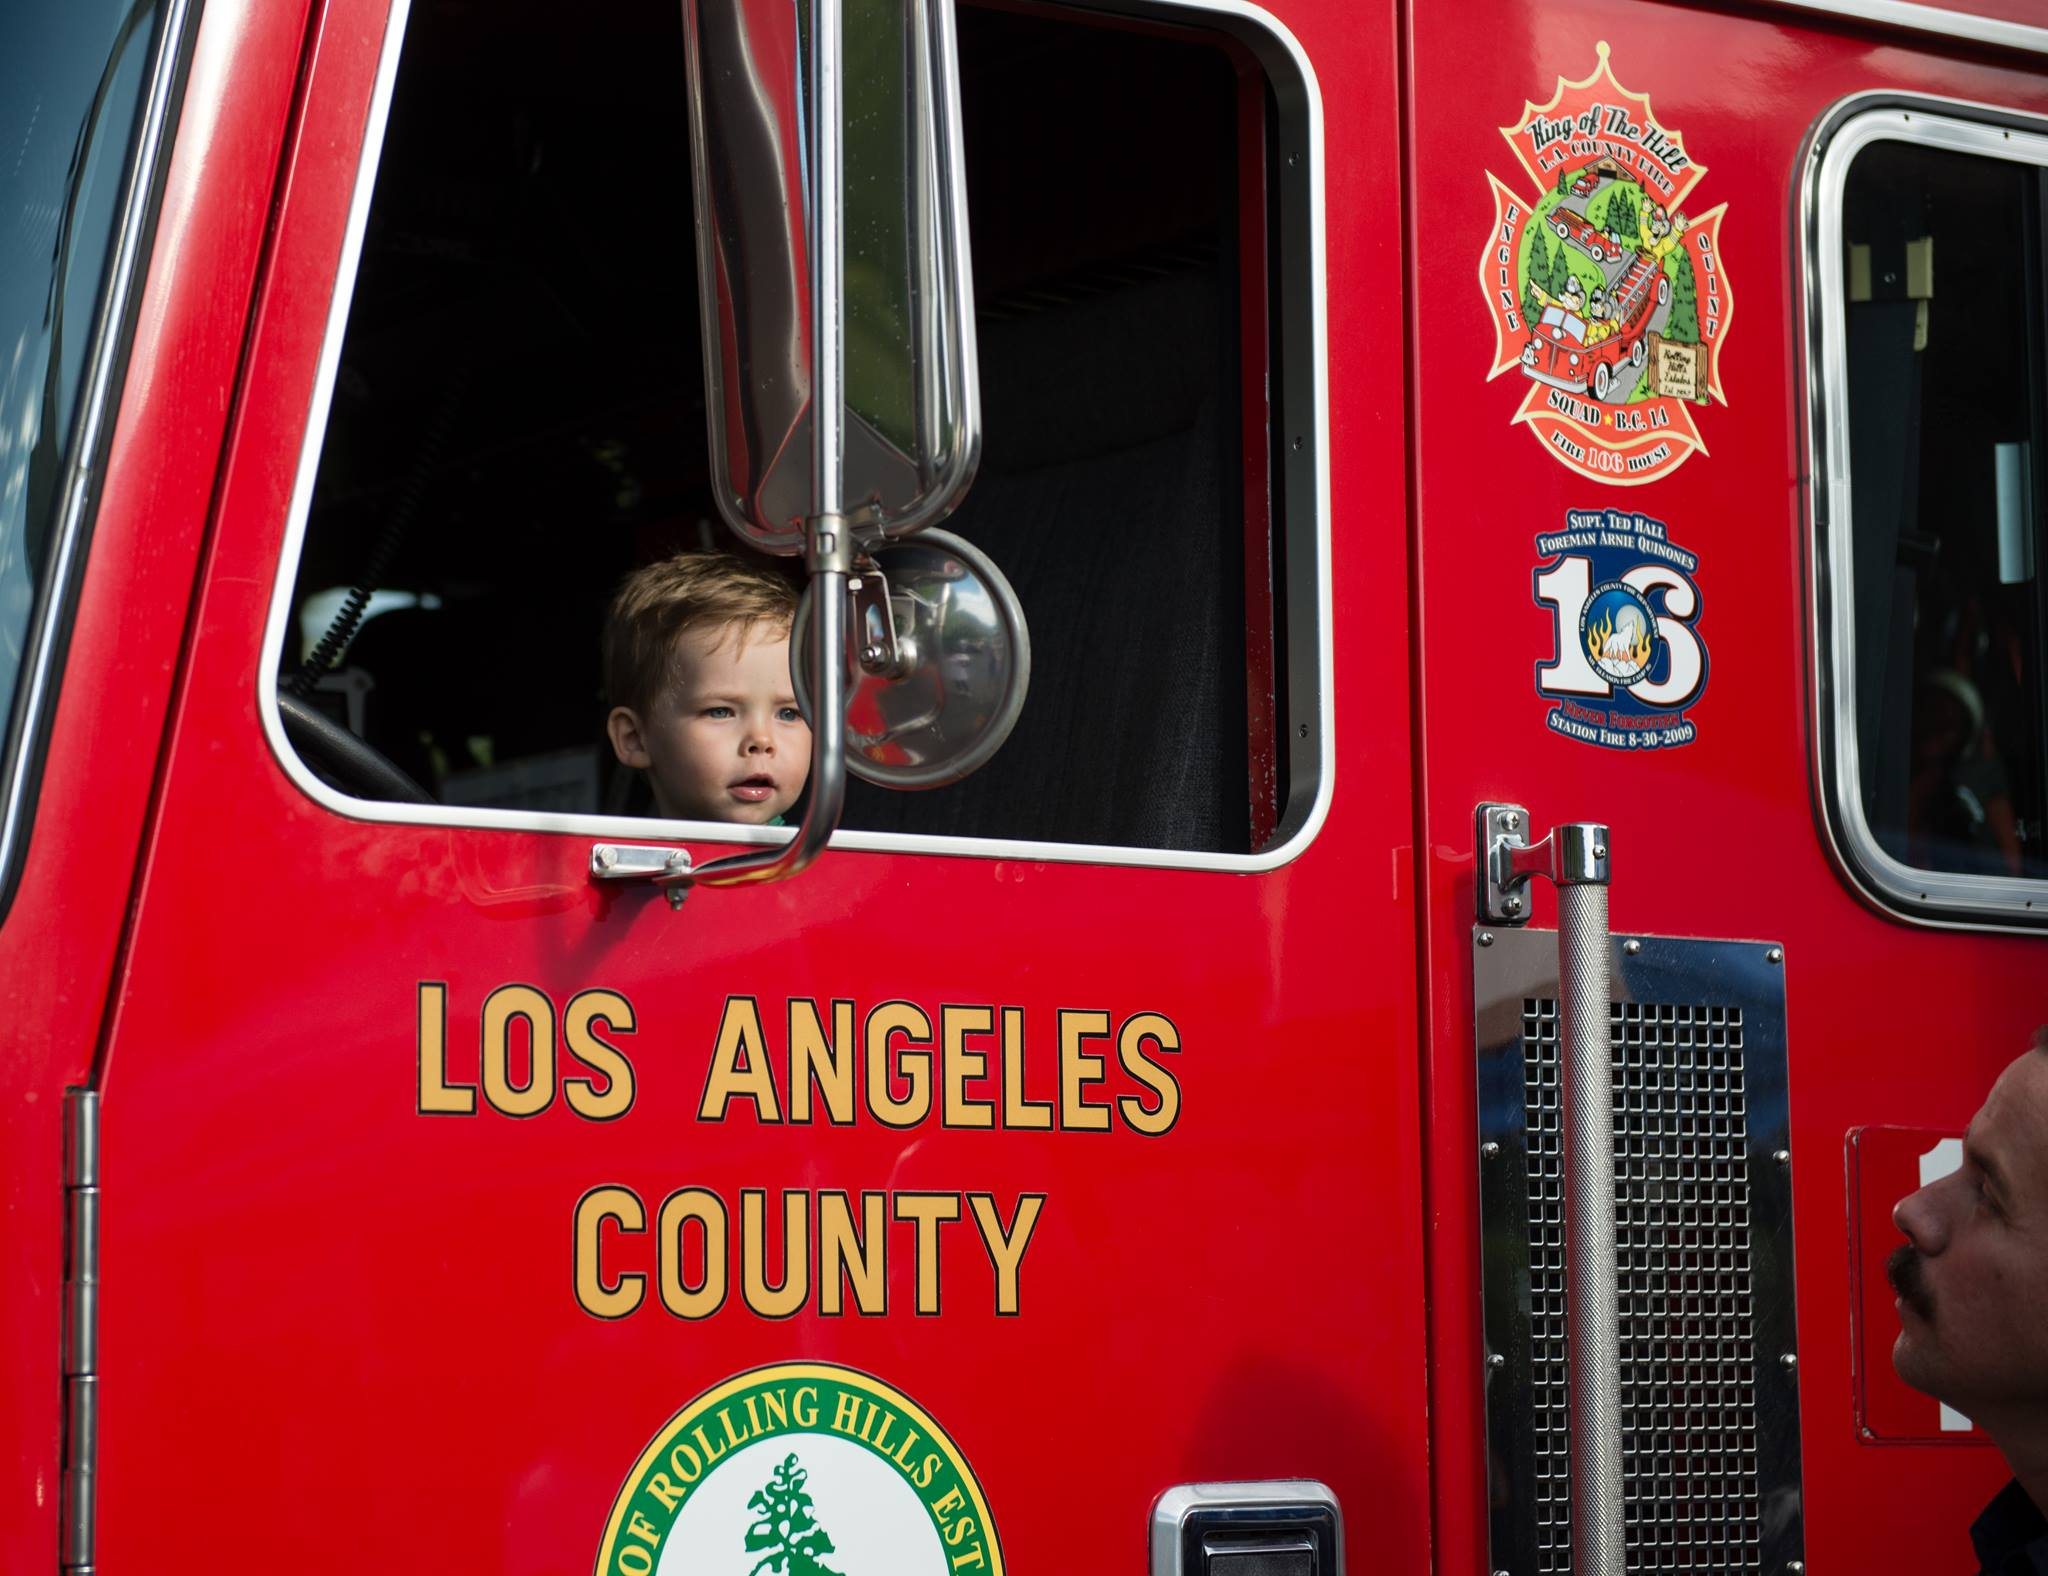 trunk or treat firetruck pic caleb.jpg